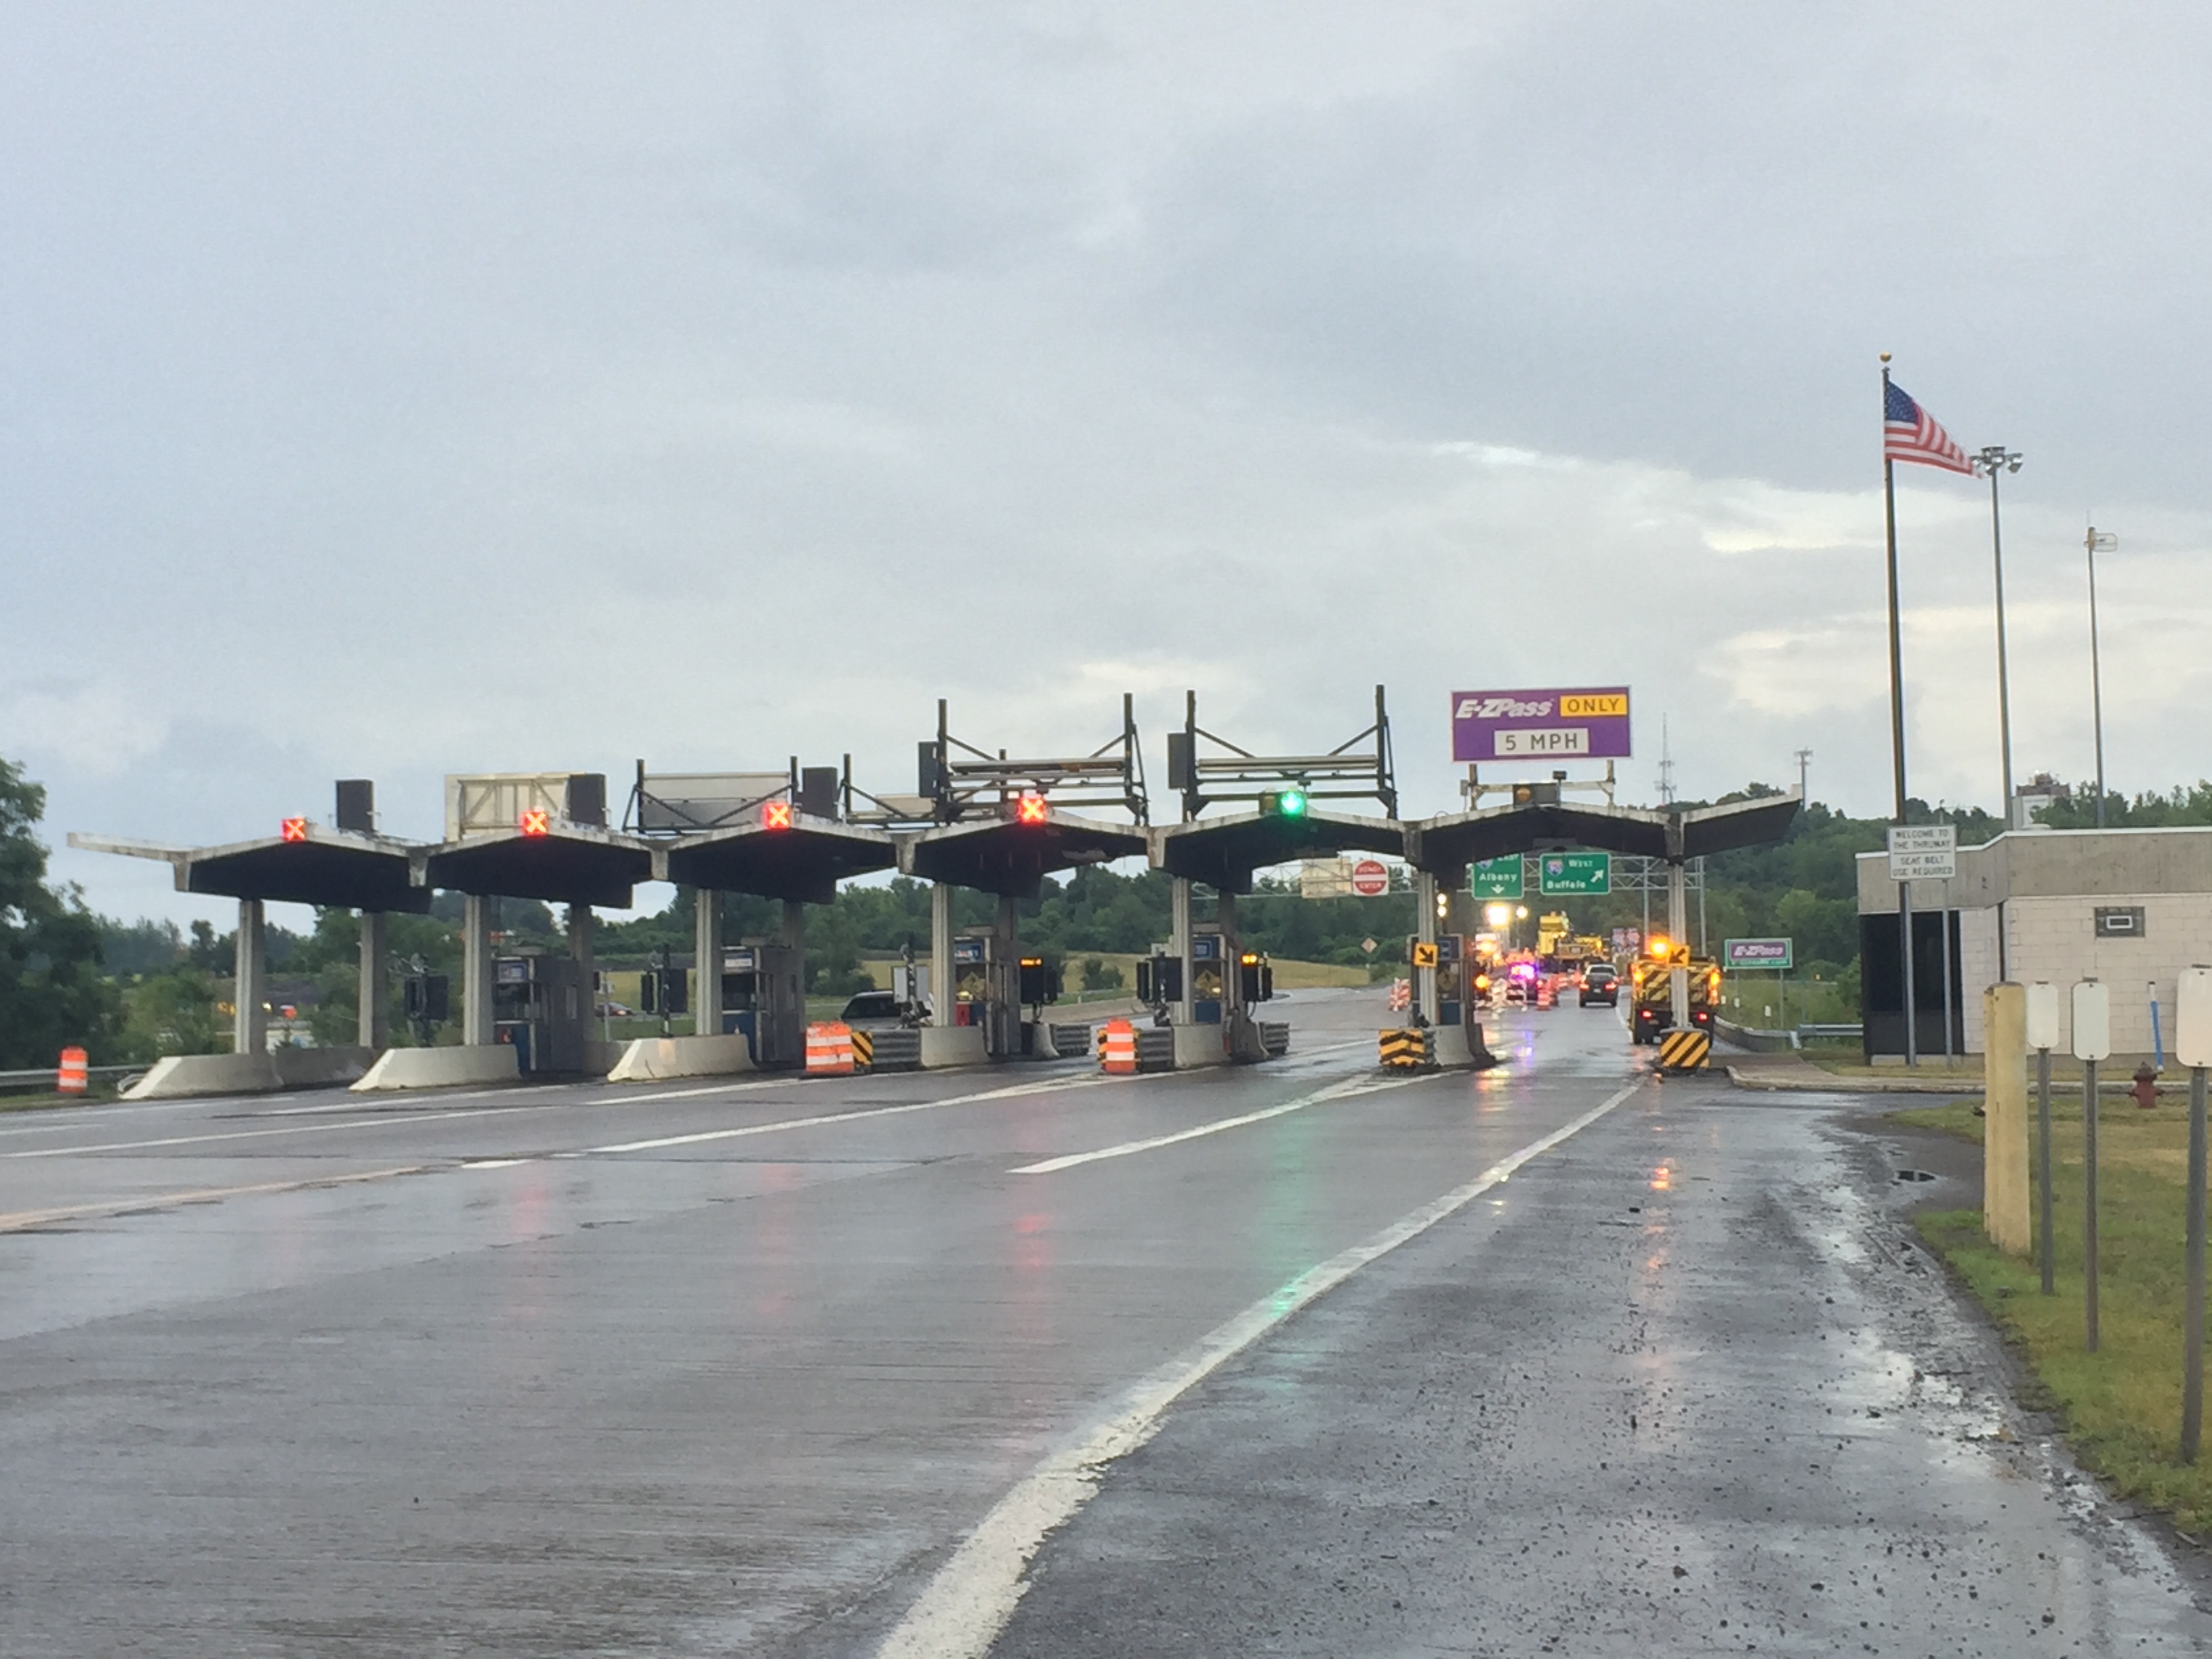 Thruway Authority will resume collecting tolls on Thursday